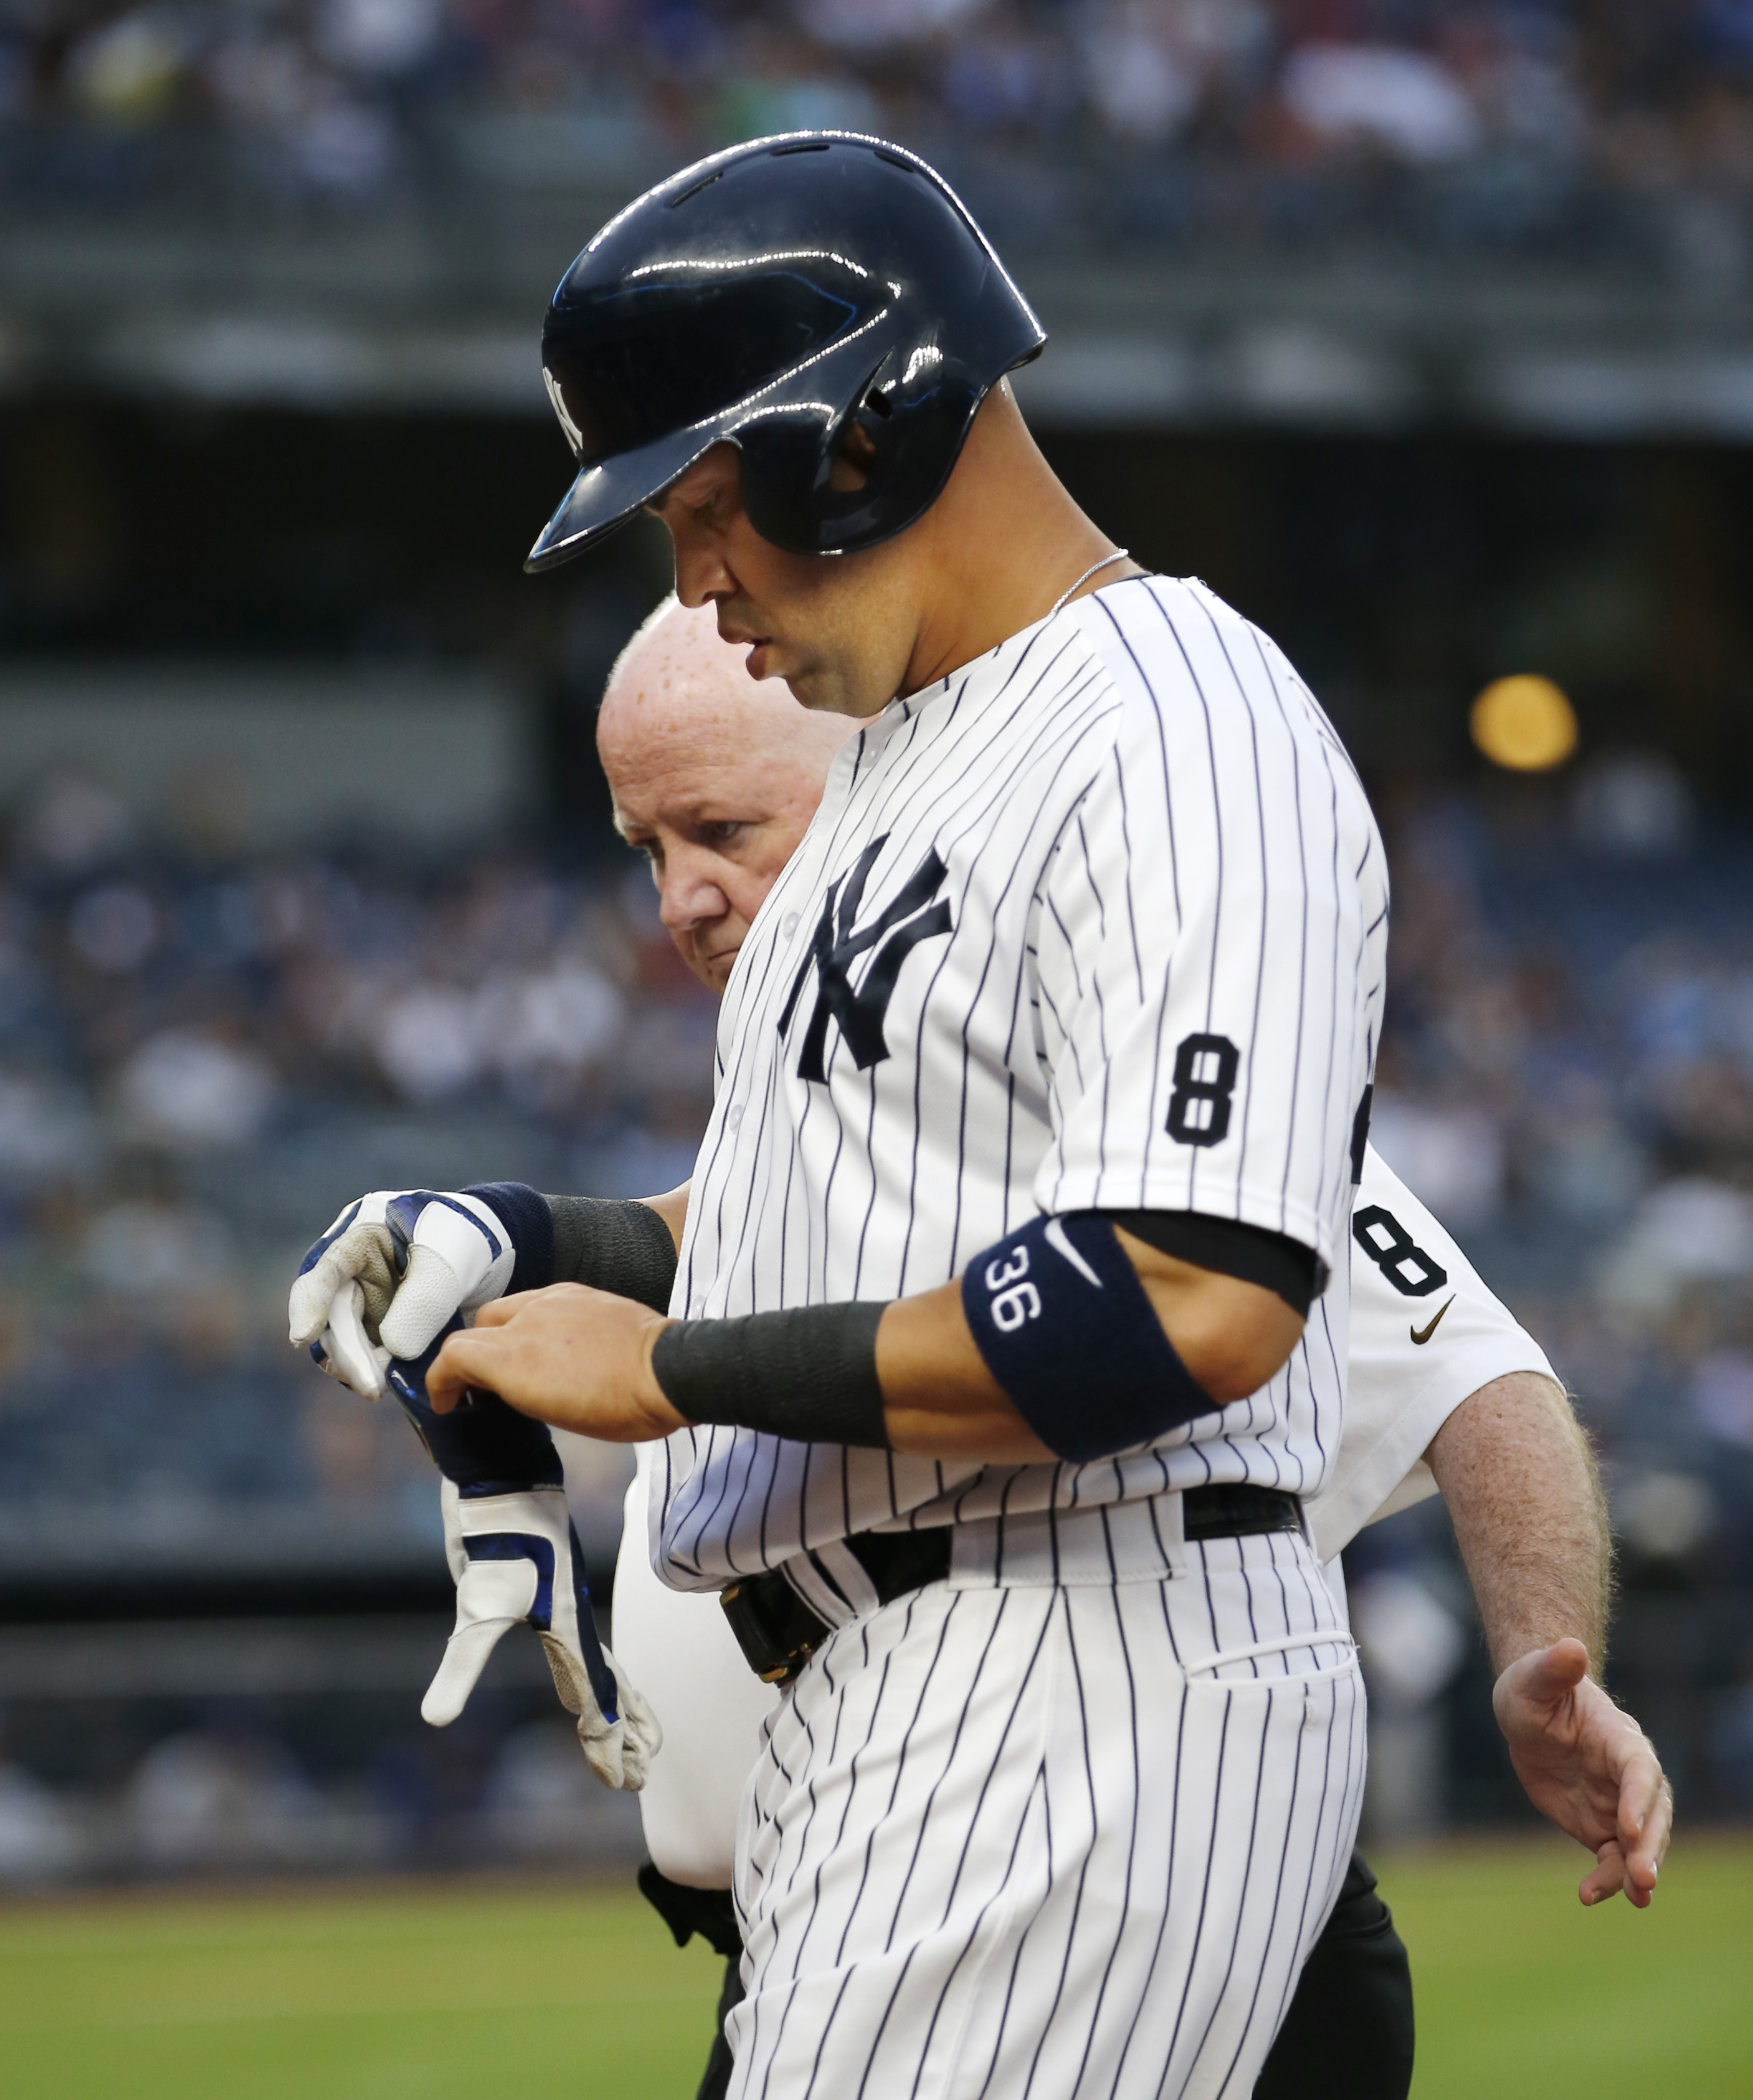 New York Yankees' Carlos Beltran, right, leaves the game with Yankees trainer Steve Donohue with an injury during the first inning of a baseball game against the Texas Rangers, in New York, Tuesday, June 28, 2016. (AP Photo/Kathy Willens)